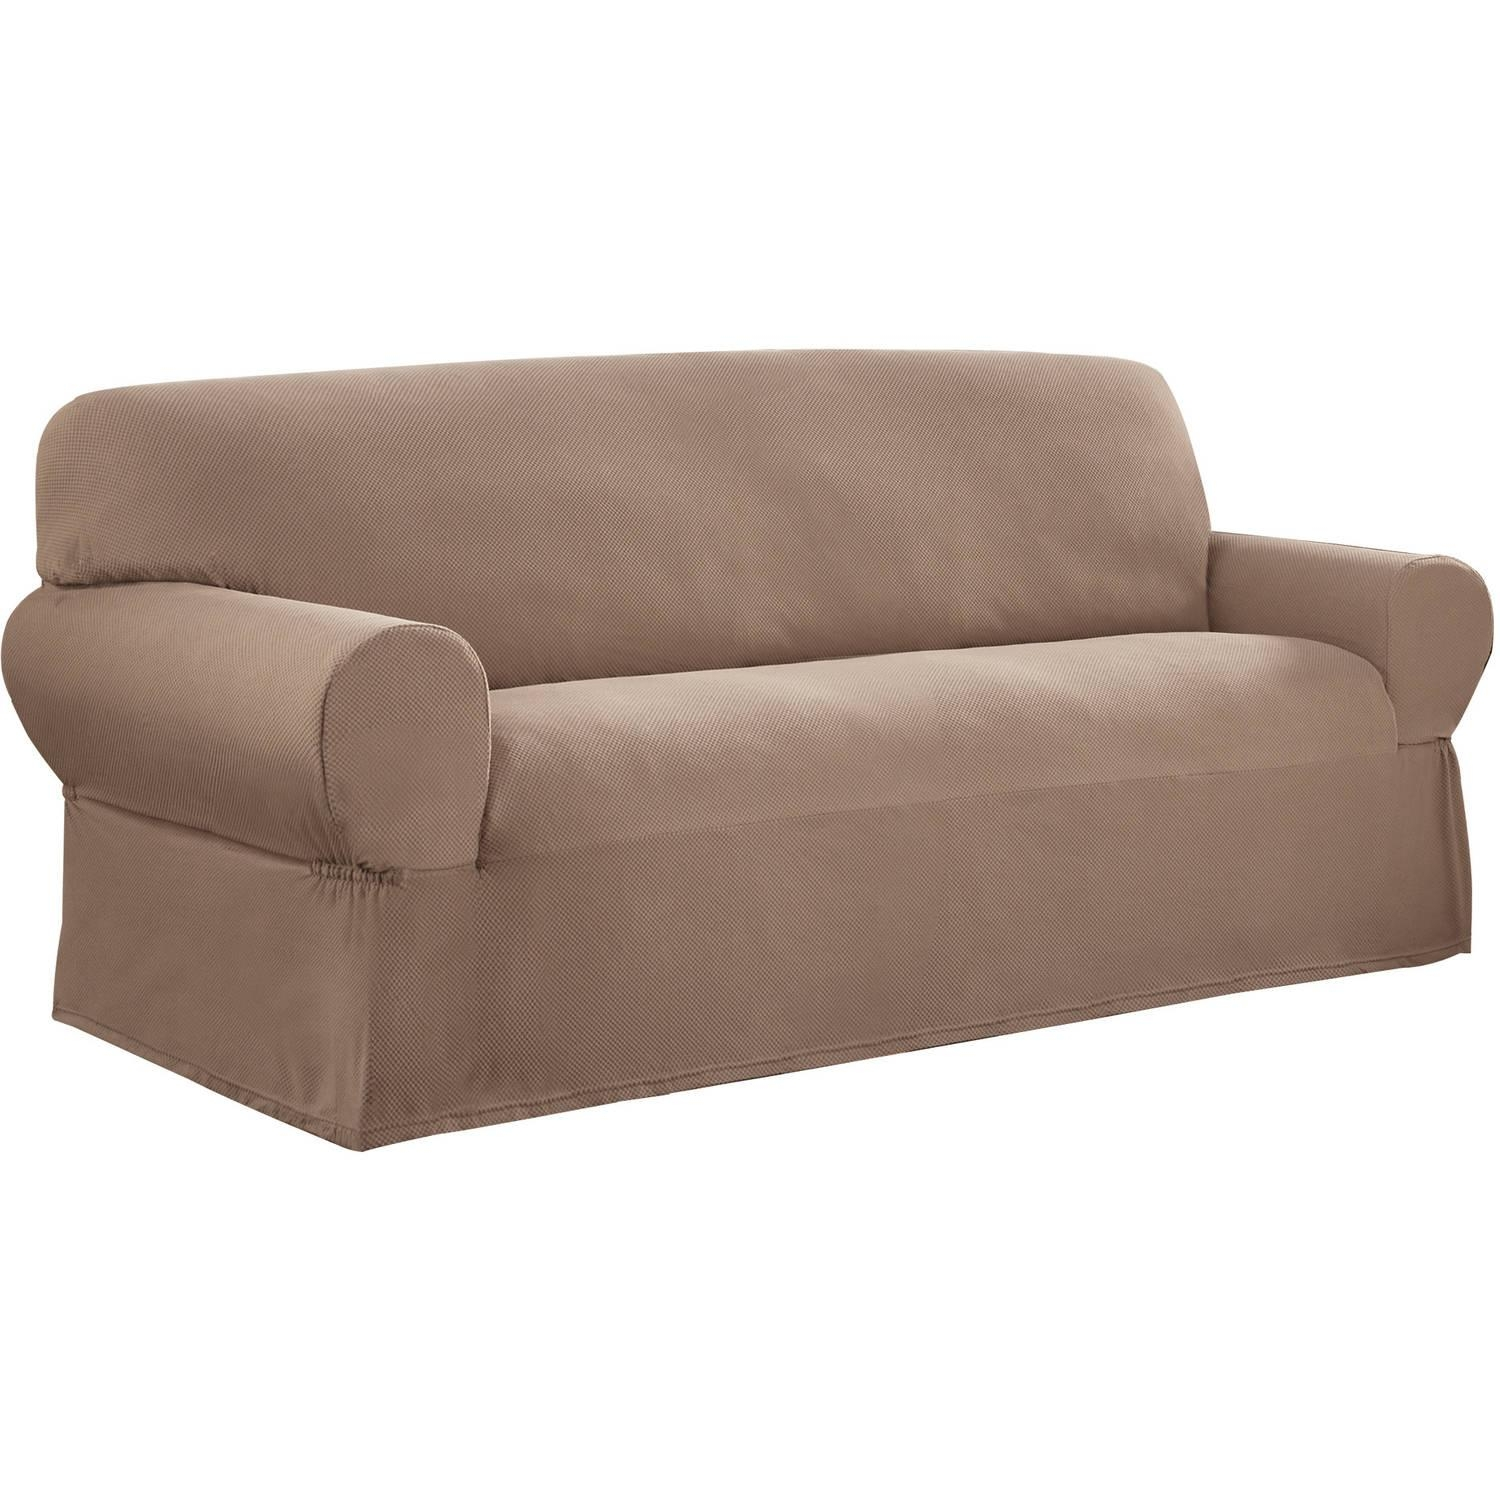 Mainstays 1 Piece Stretch Fabric Sofa Slipcover – Walmart Throughout Slipcovers For Sofas And Chairs (Image 18 of 20)